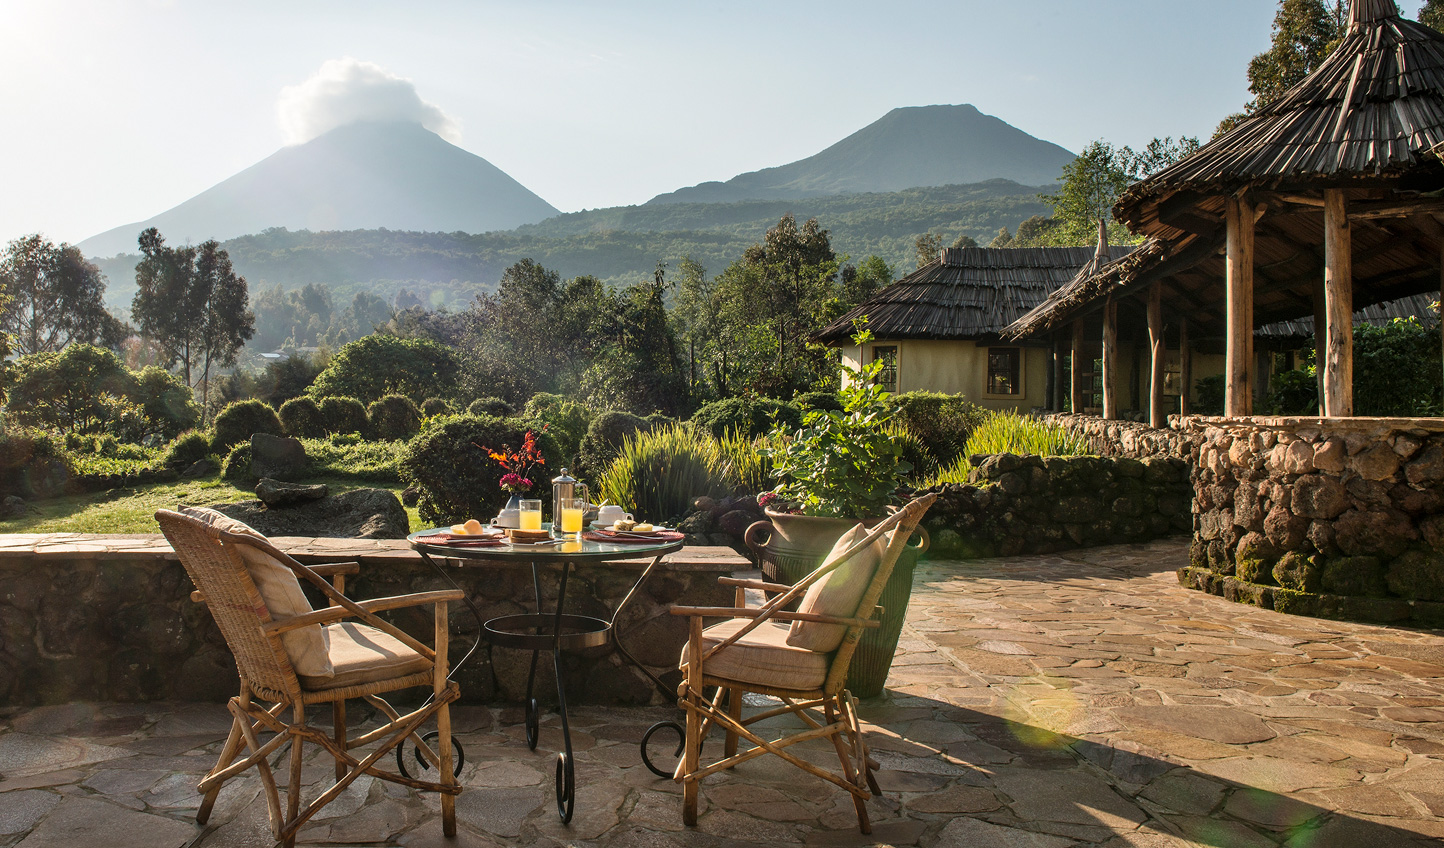 Enjoy breakfast out on the terrace, dining in the shadow of volanoes